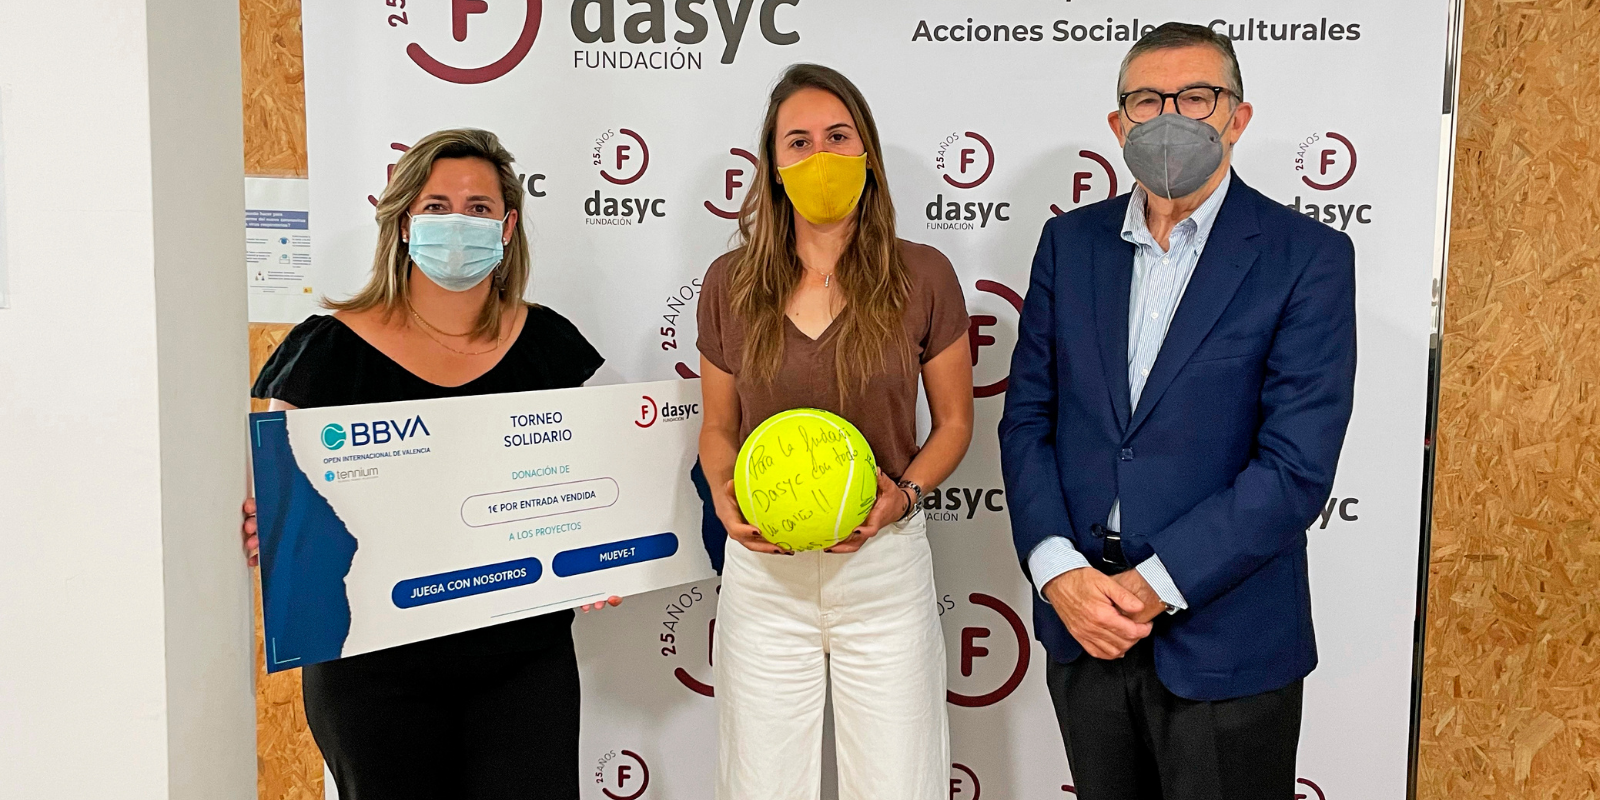 THE BBVA INTERNATIONAL OPEN OF VALENCIA WILL DONATE ONE EURO FROM EACH TICKET SOLD TO THE DASYC FOUNDATION